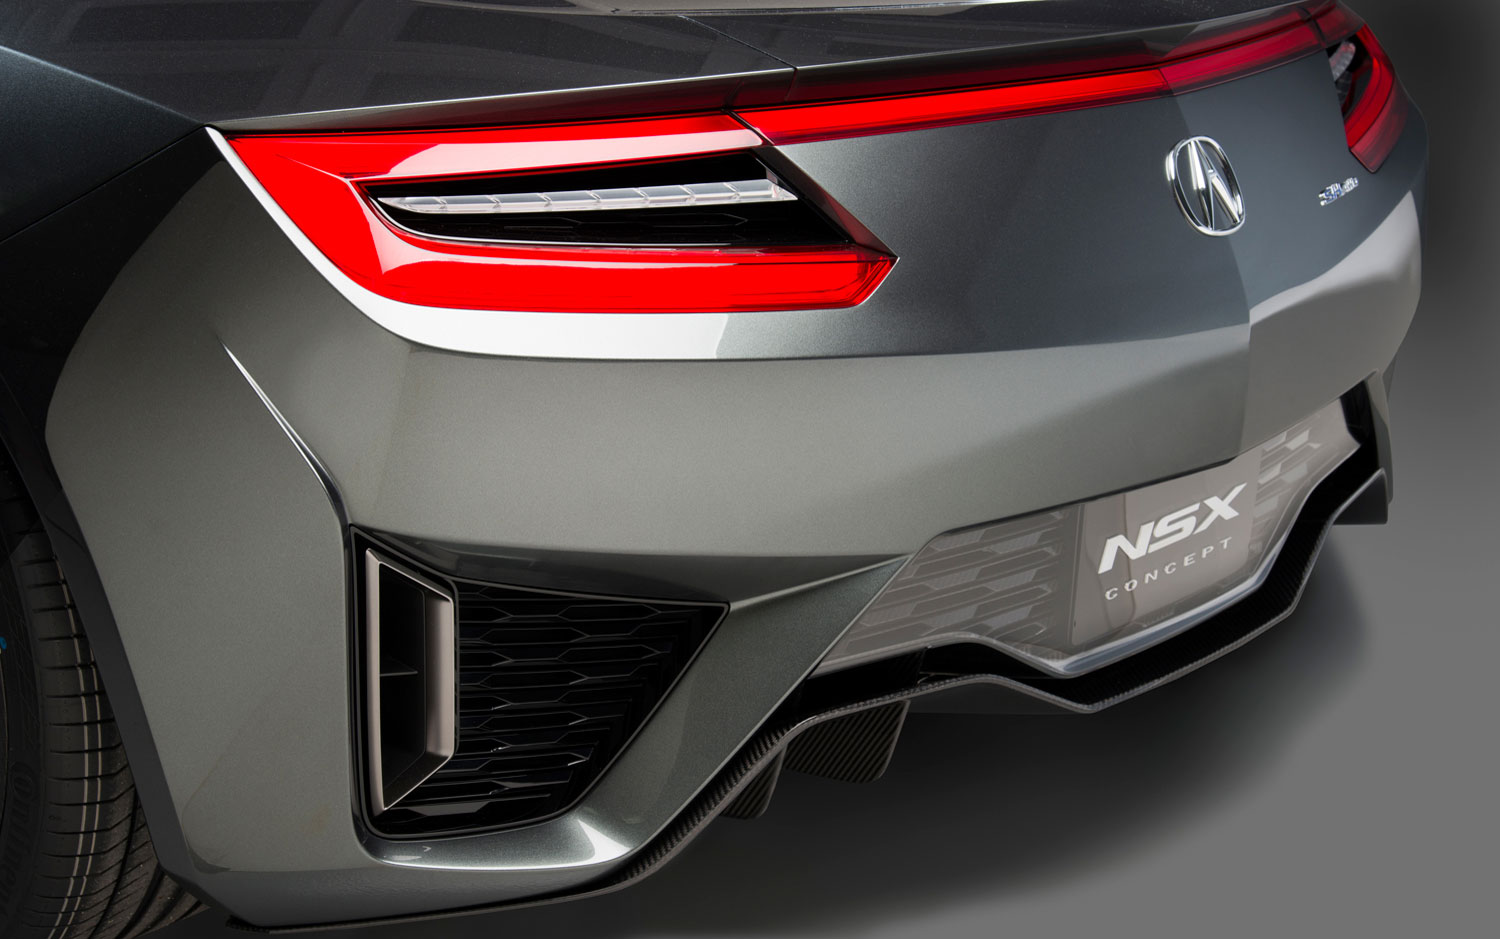 Updated Acura NSX Concept Shows Possible Interior Design